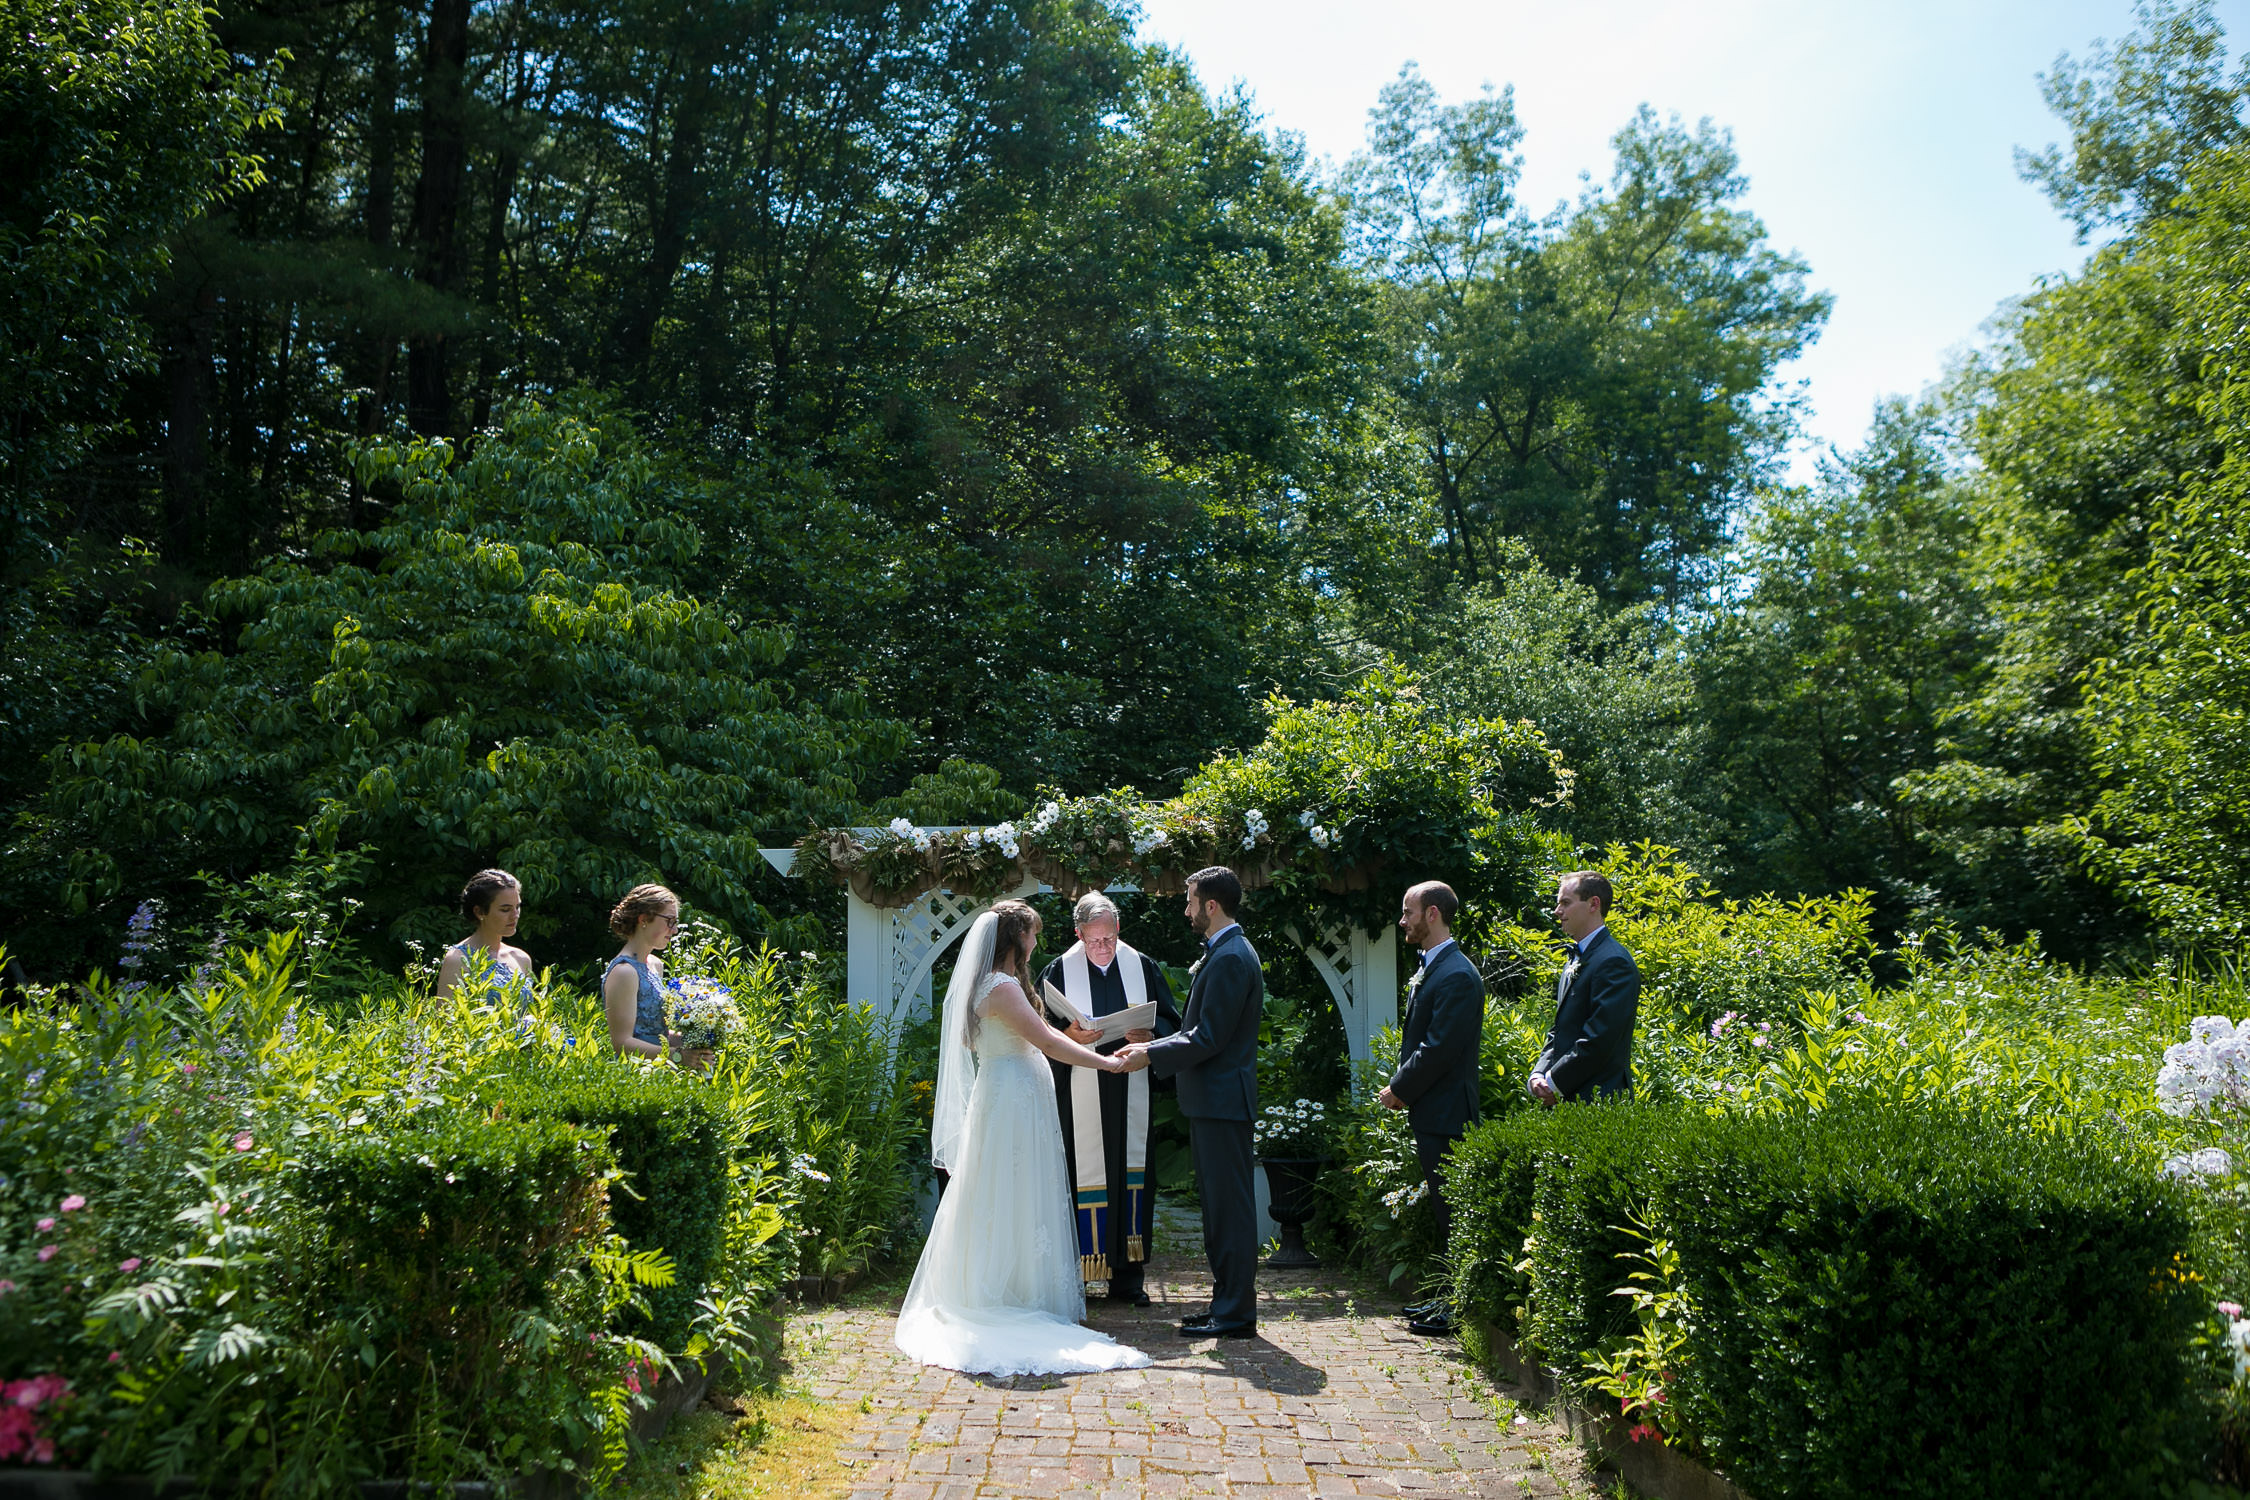 hartmans herb farm weddings, overall view of ceremony site